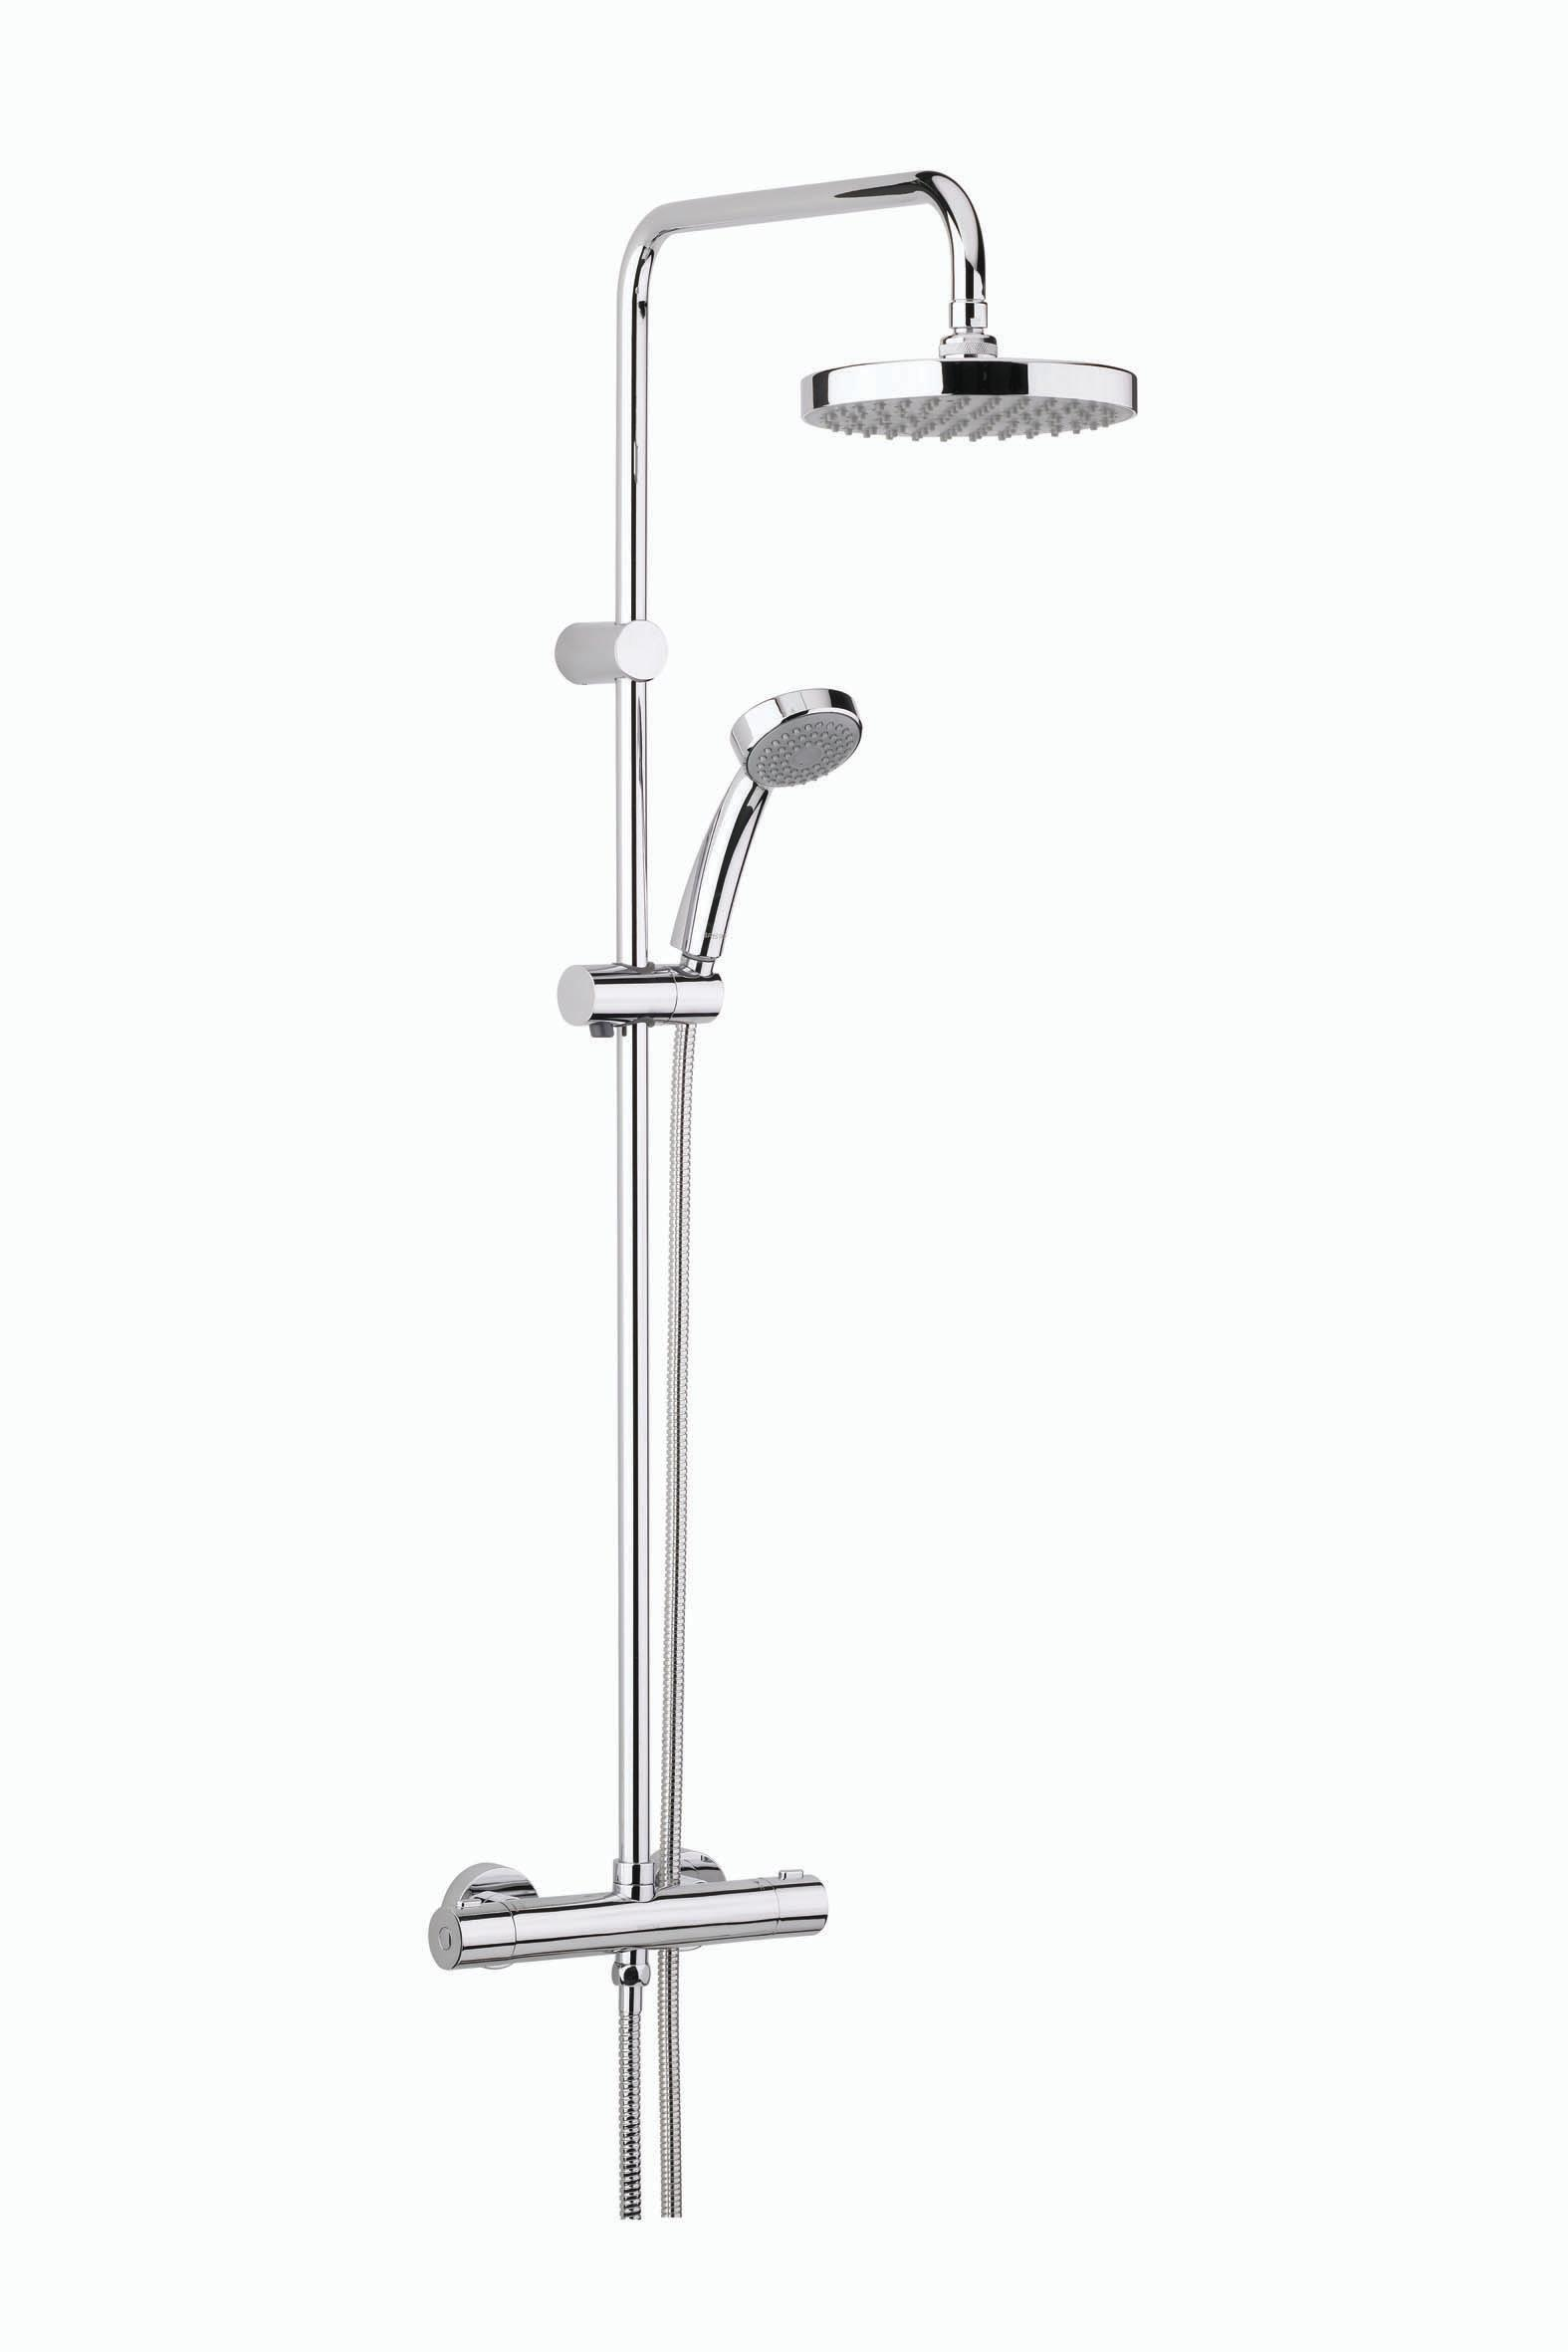 BRISTAN CARRE THERMOSTATIC BAR SHOWER VALVE WITH FIXED HEAD - CR SHXDIVFF C